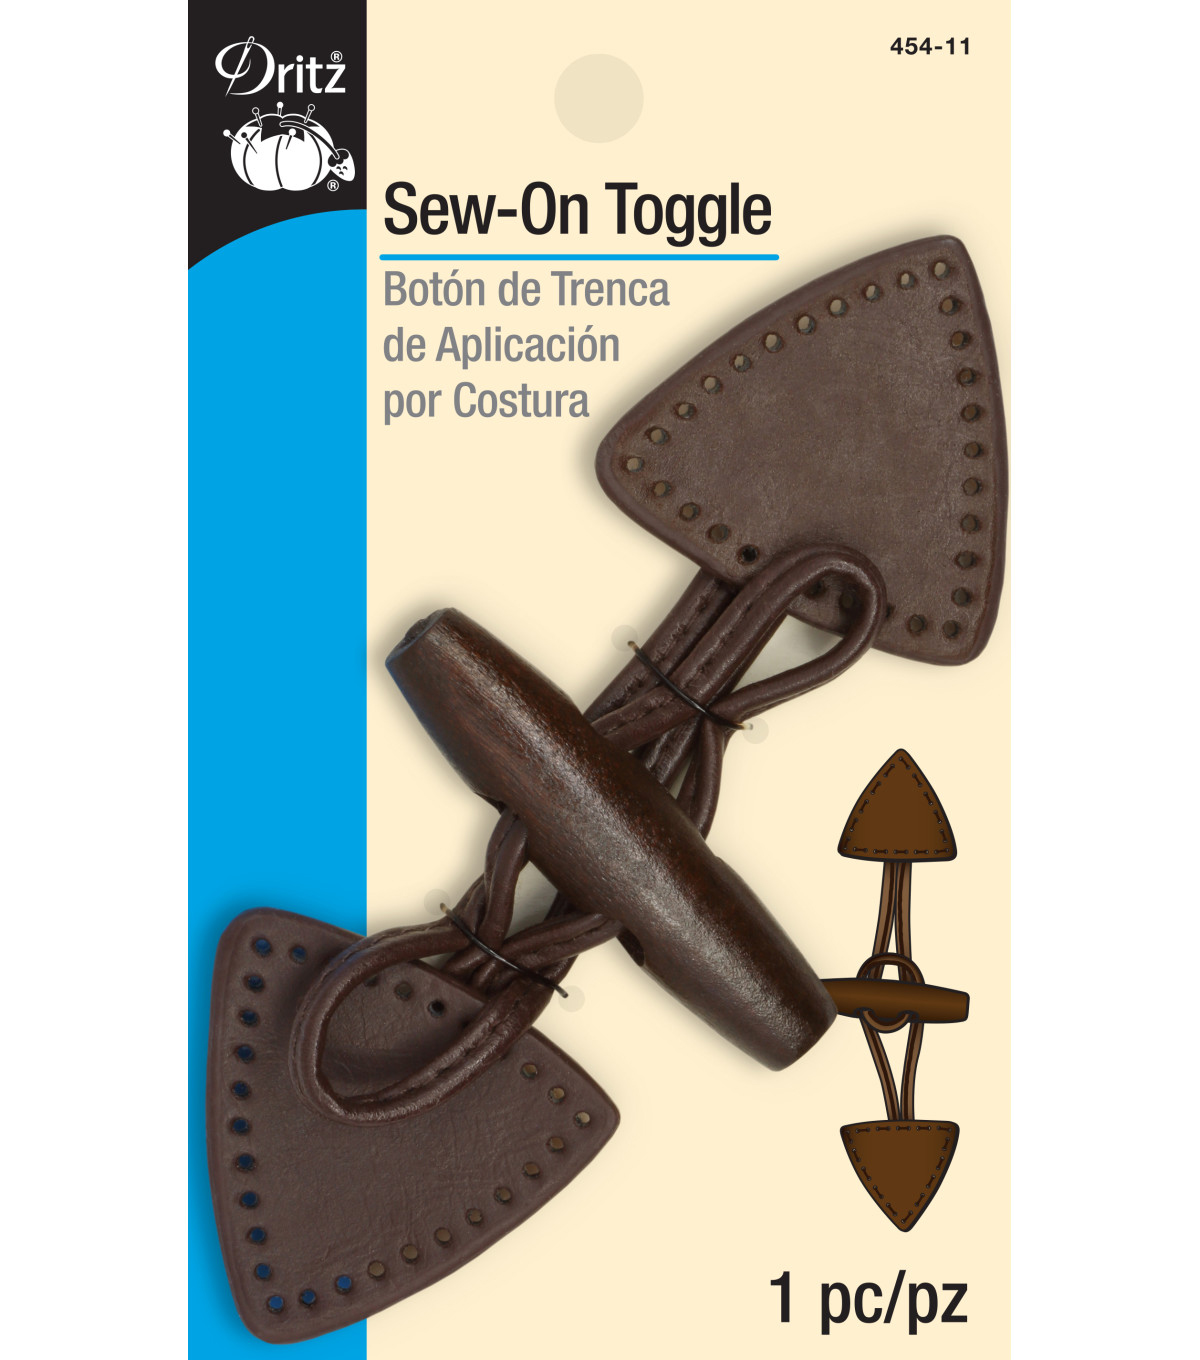 Dritz-Sew-On Toggle Brown